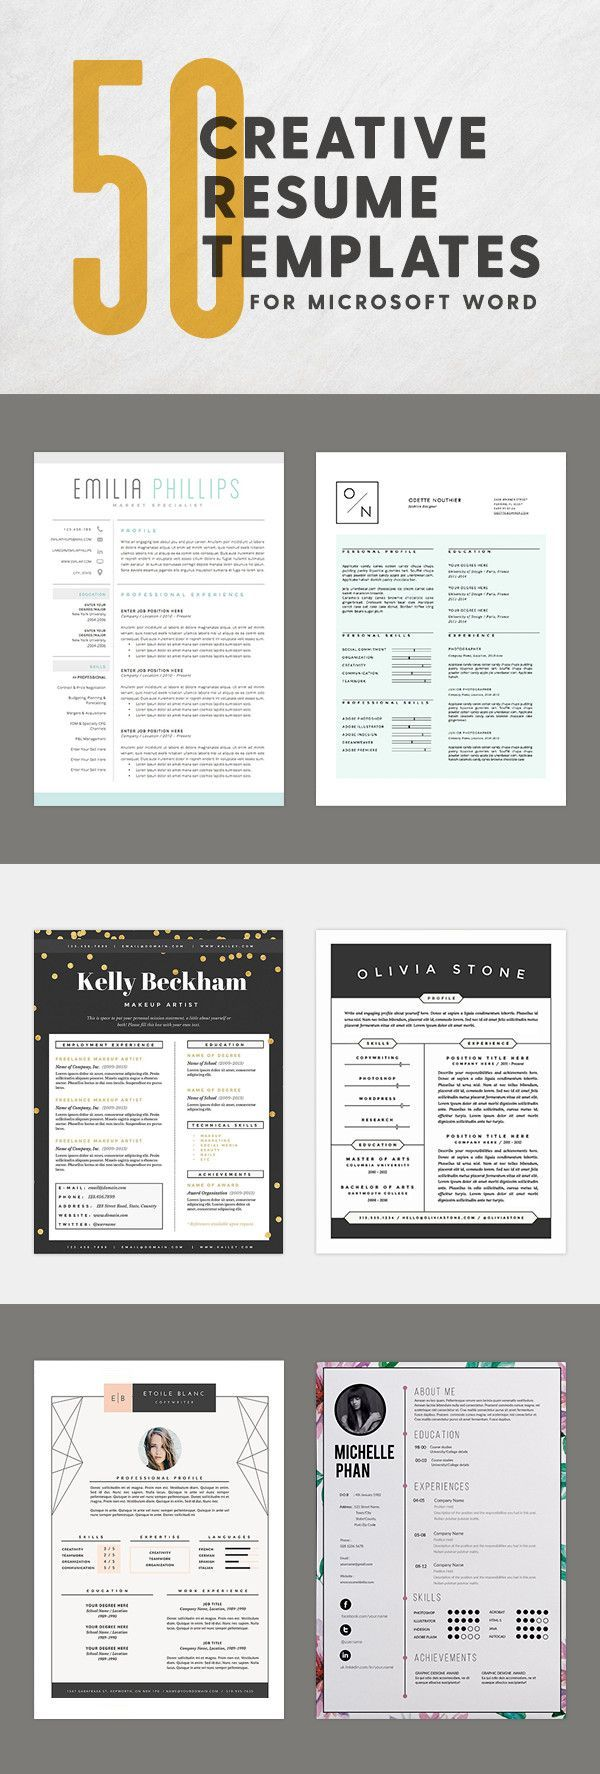 Innovative Artistic Microsoft Word Resume Templates That Can